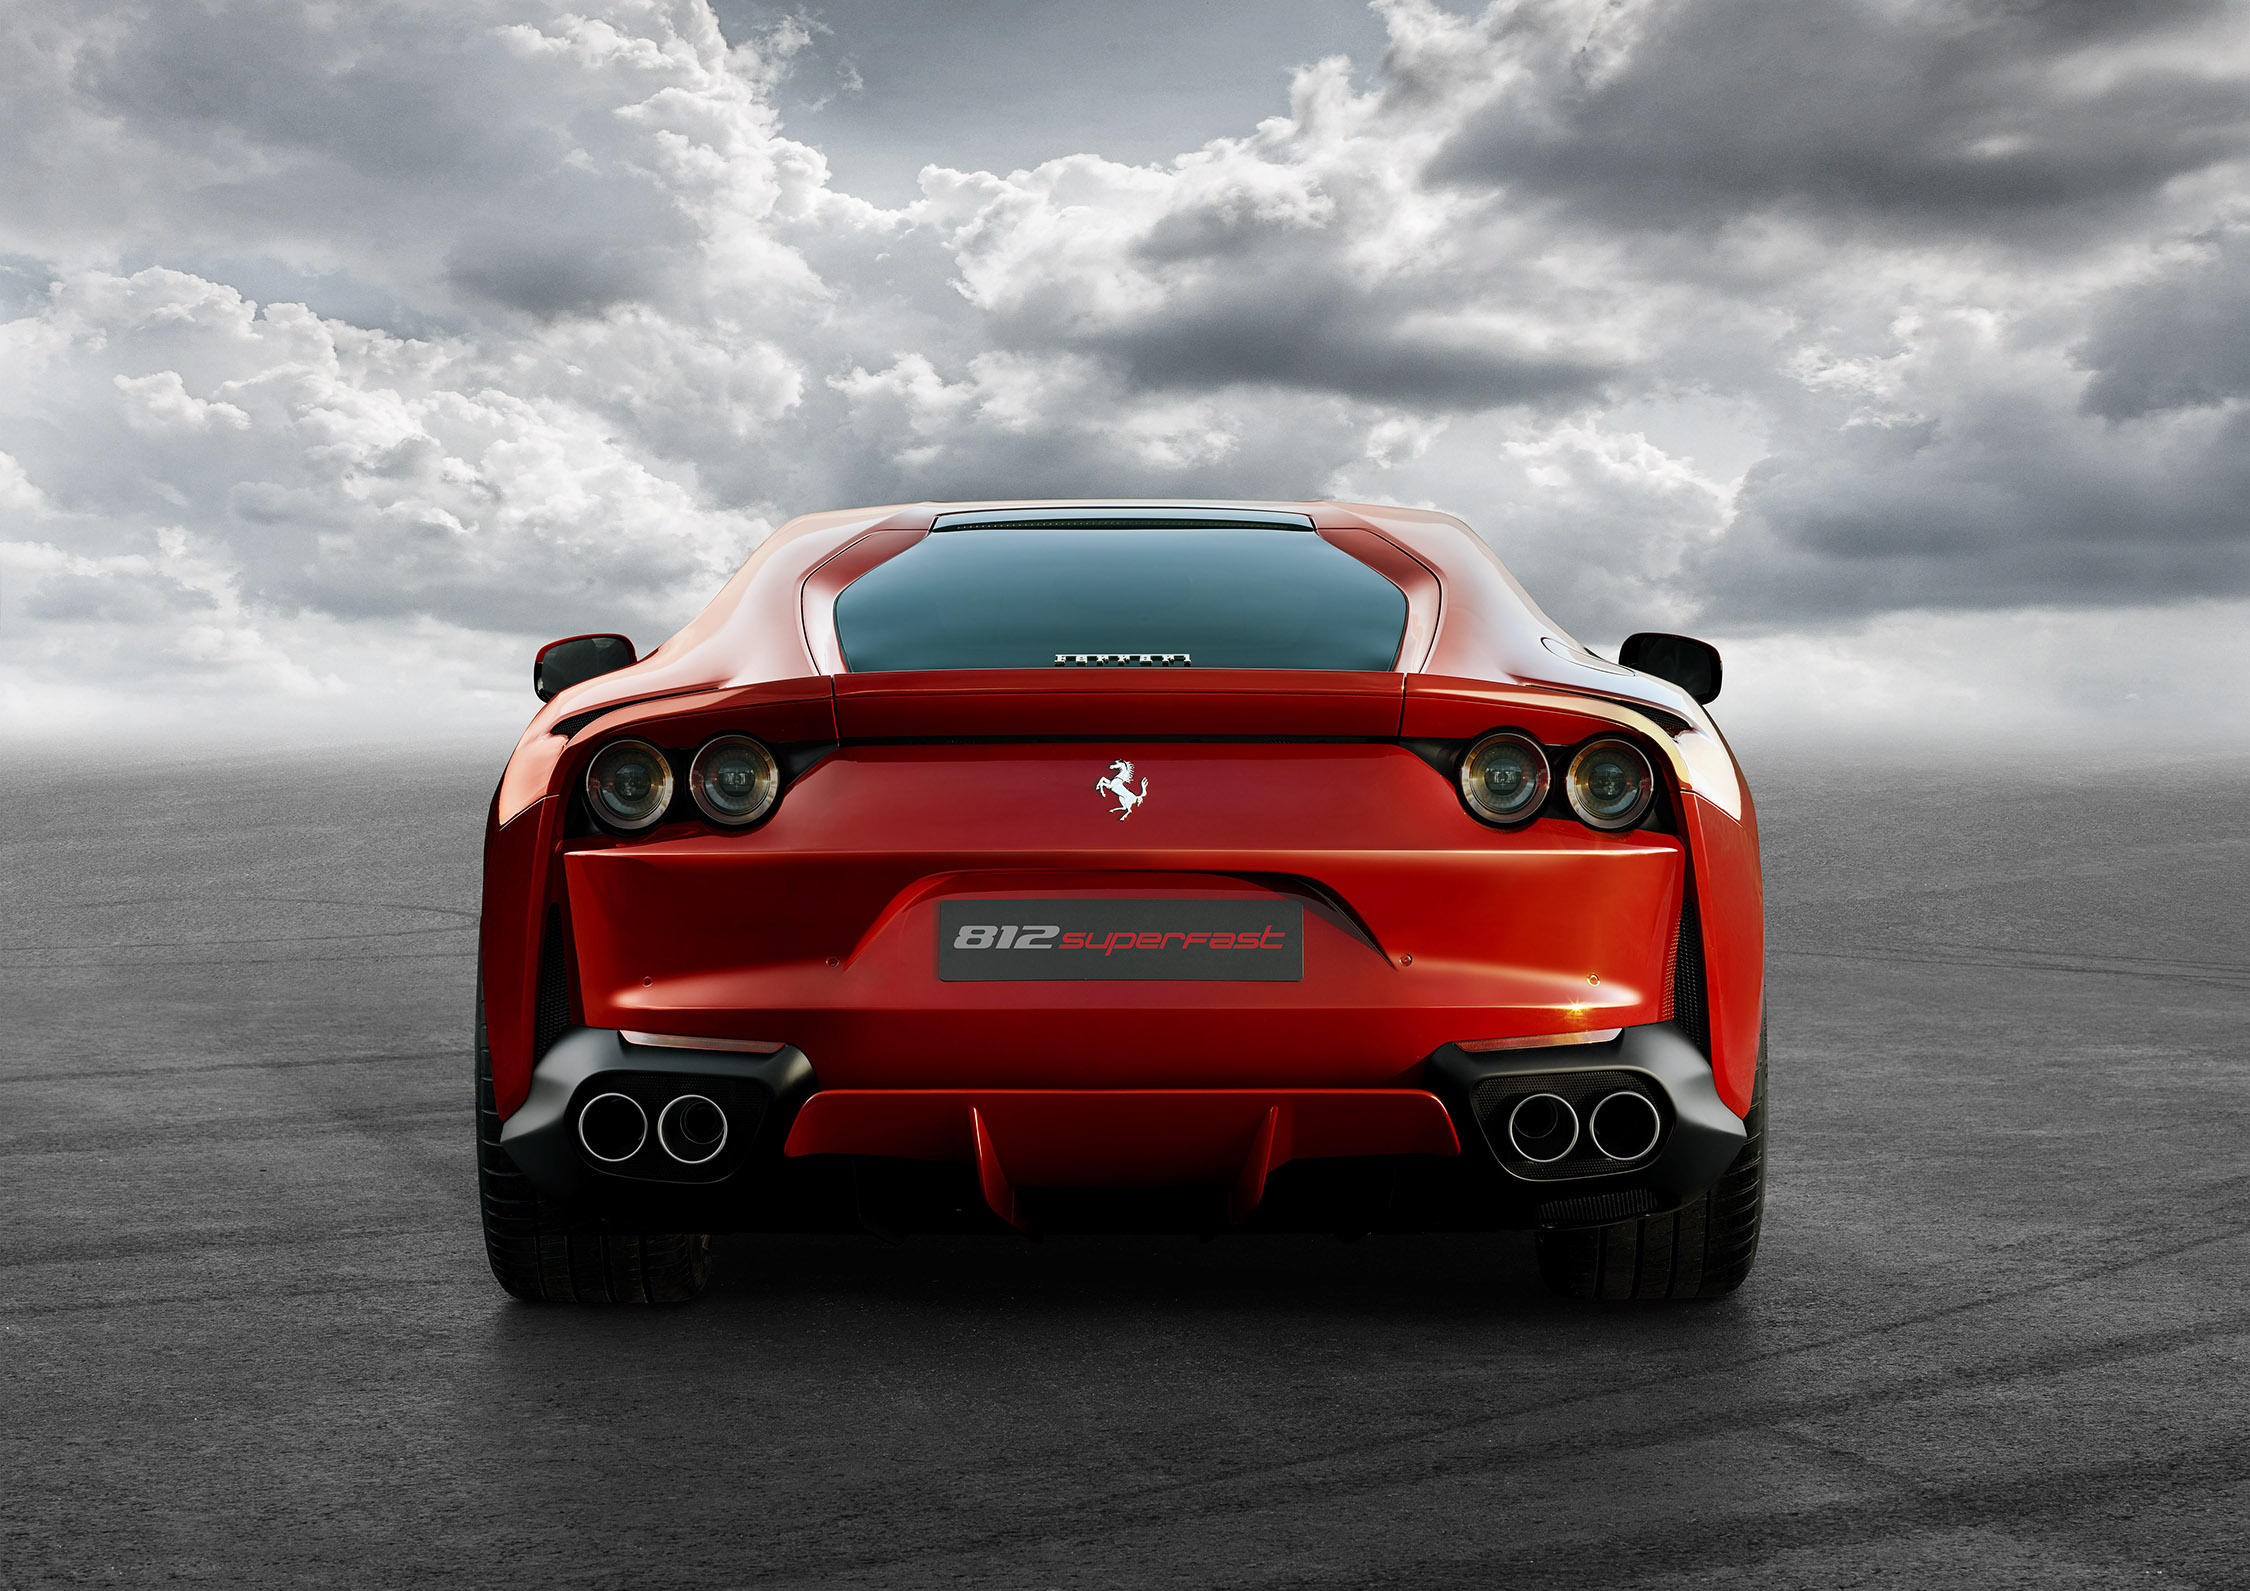 For More Information, Visit Www.philippines.ferraridealers.com.